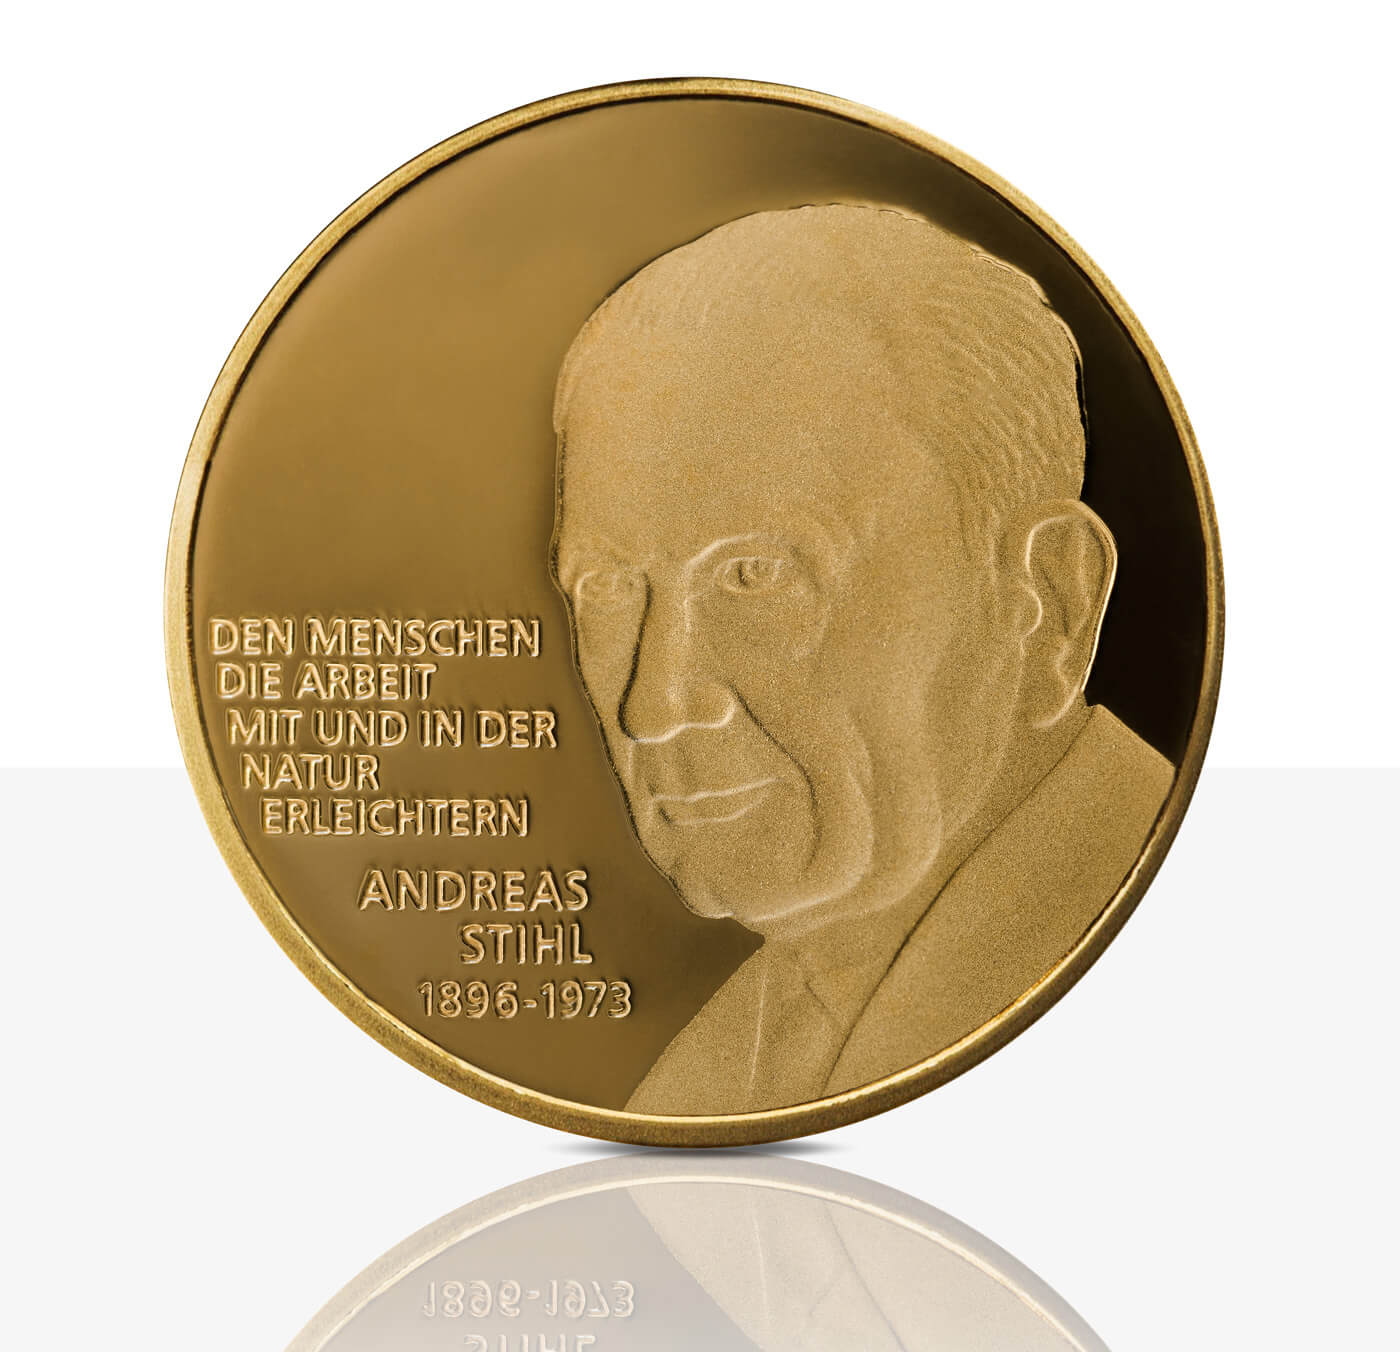 Andreas Stihl - Gold medal proof